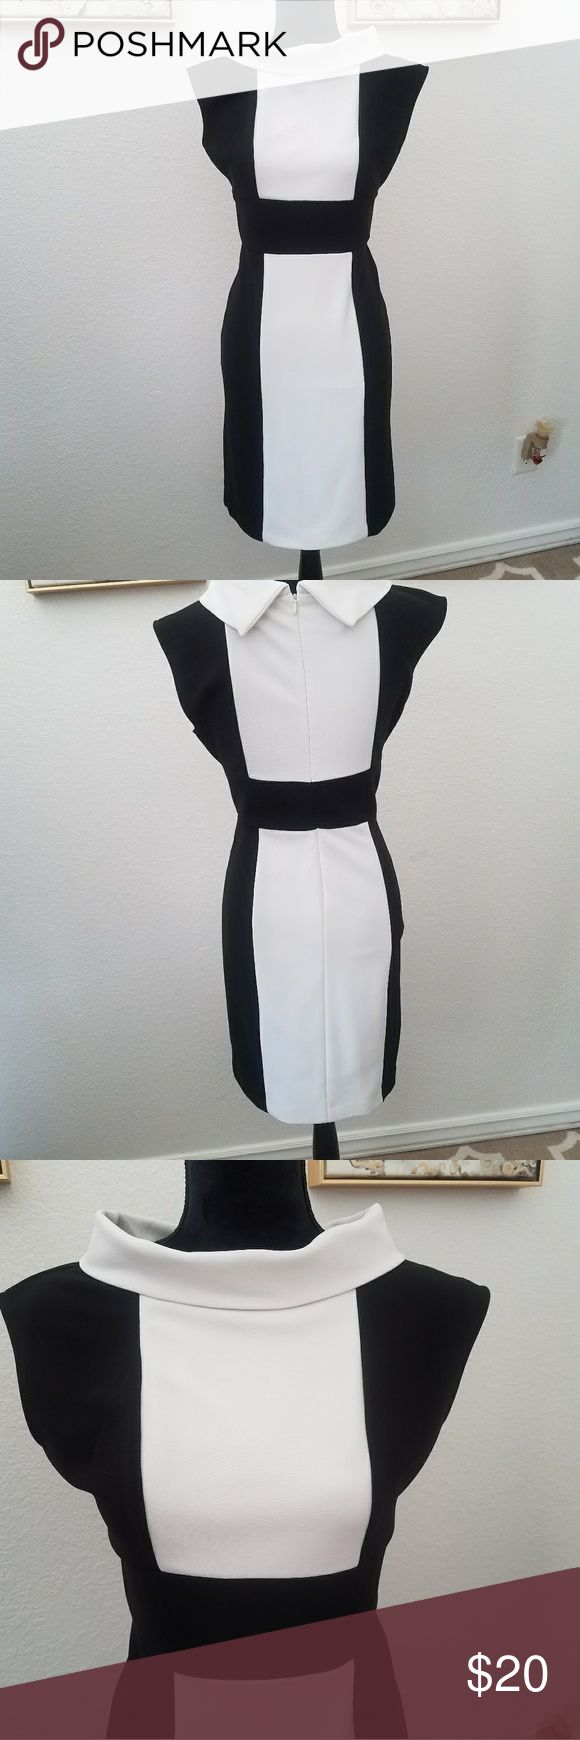 London Times, sleeveless black and white dress. Very cute, London Times black and white knit dress. It's a 8 petite. In very good condition. London Times Dresses